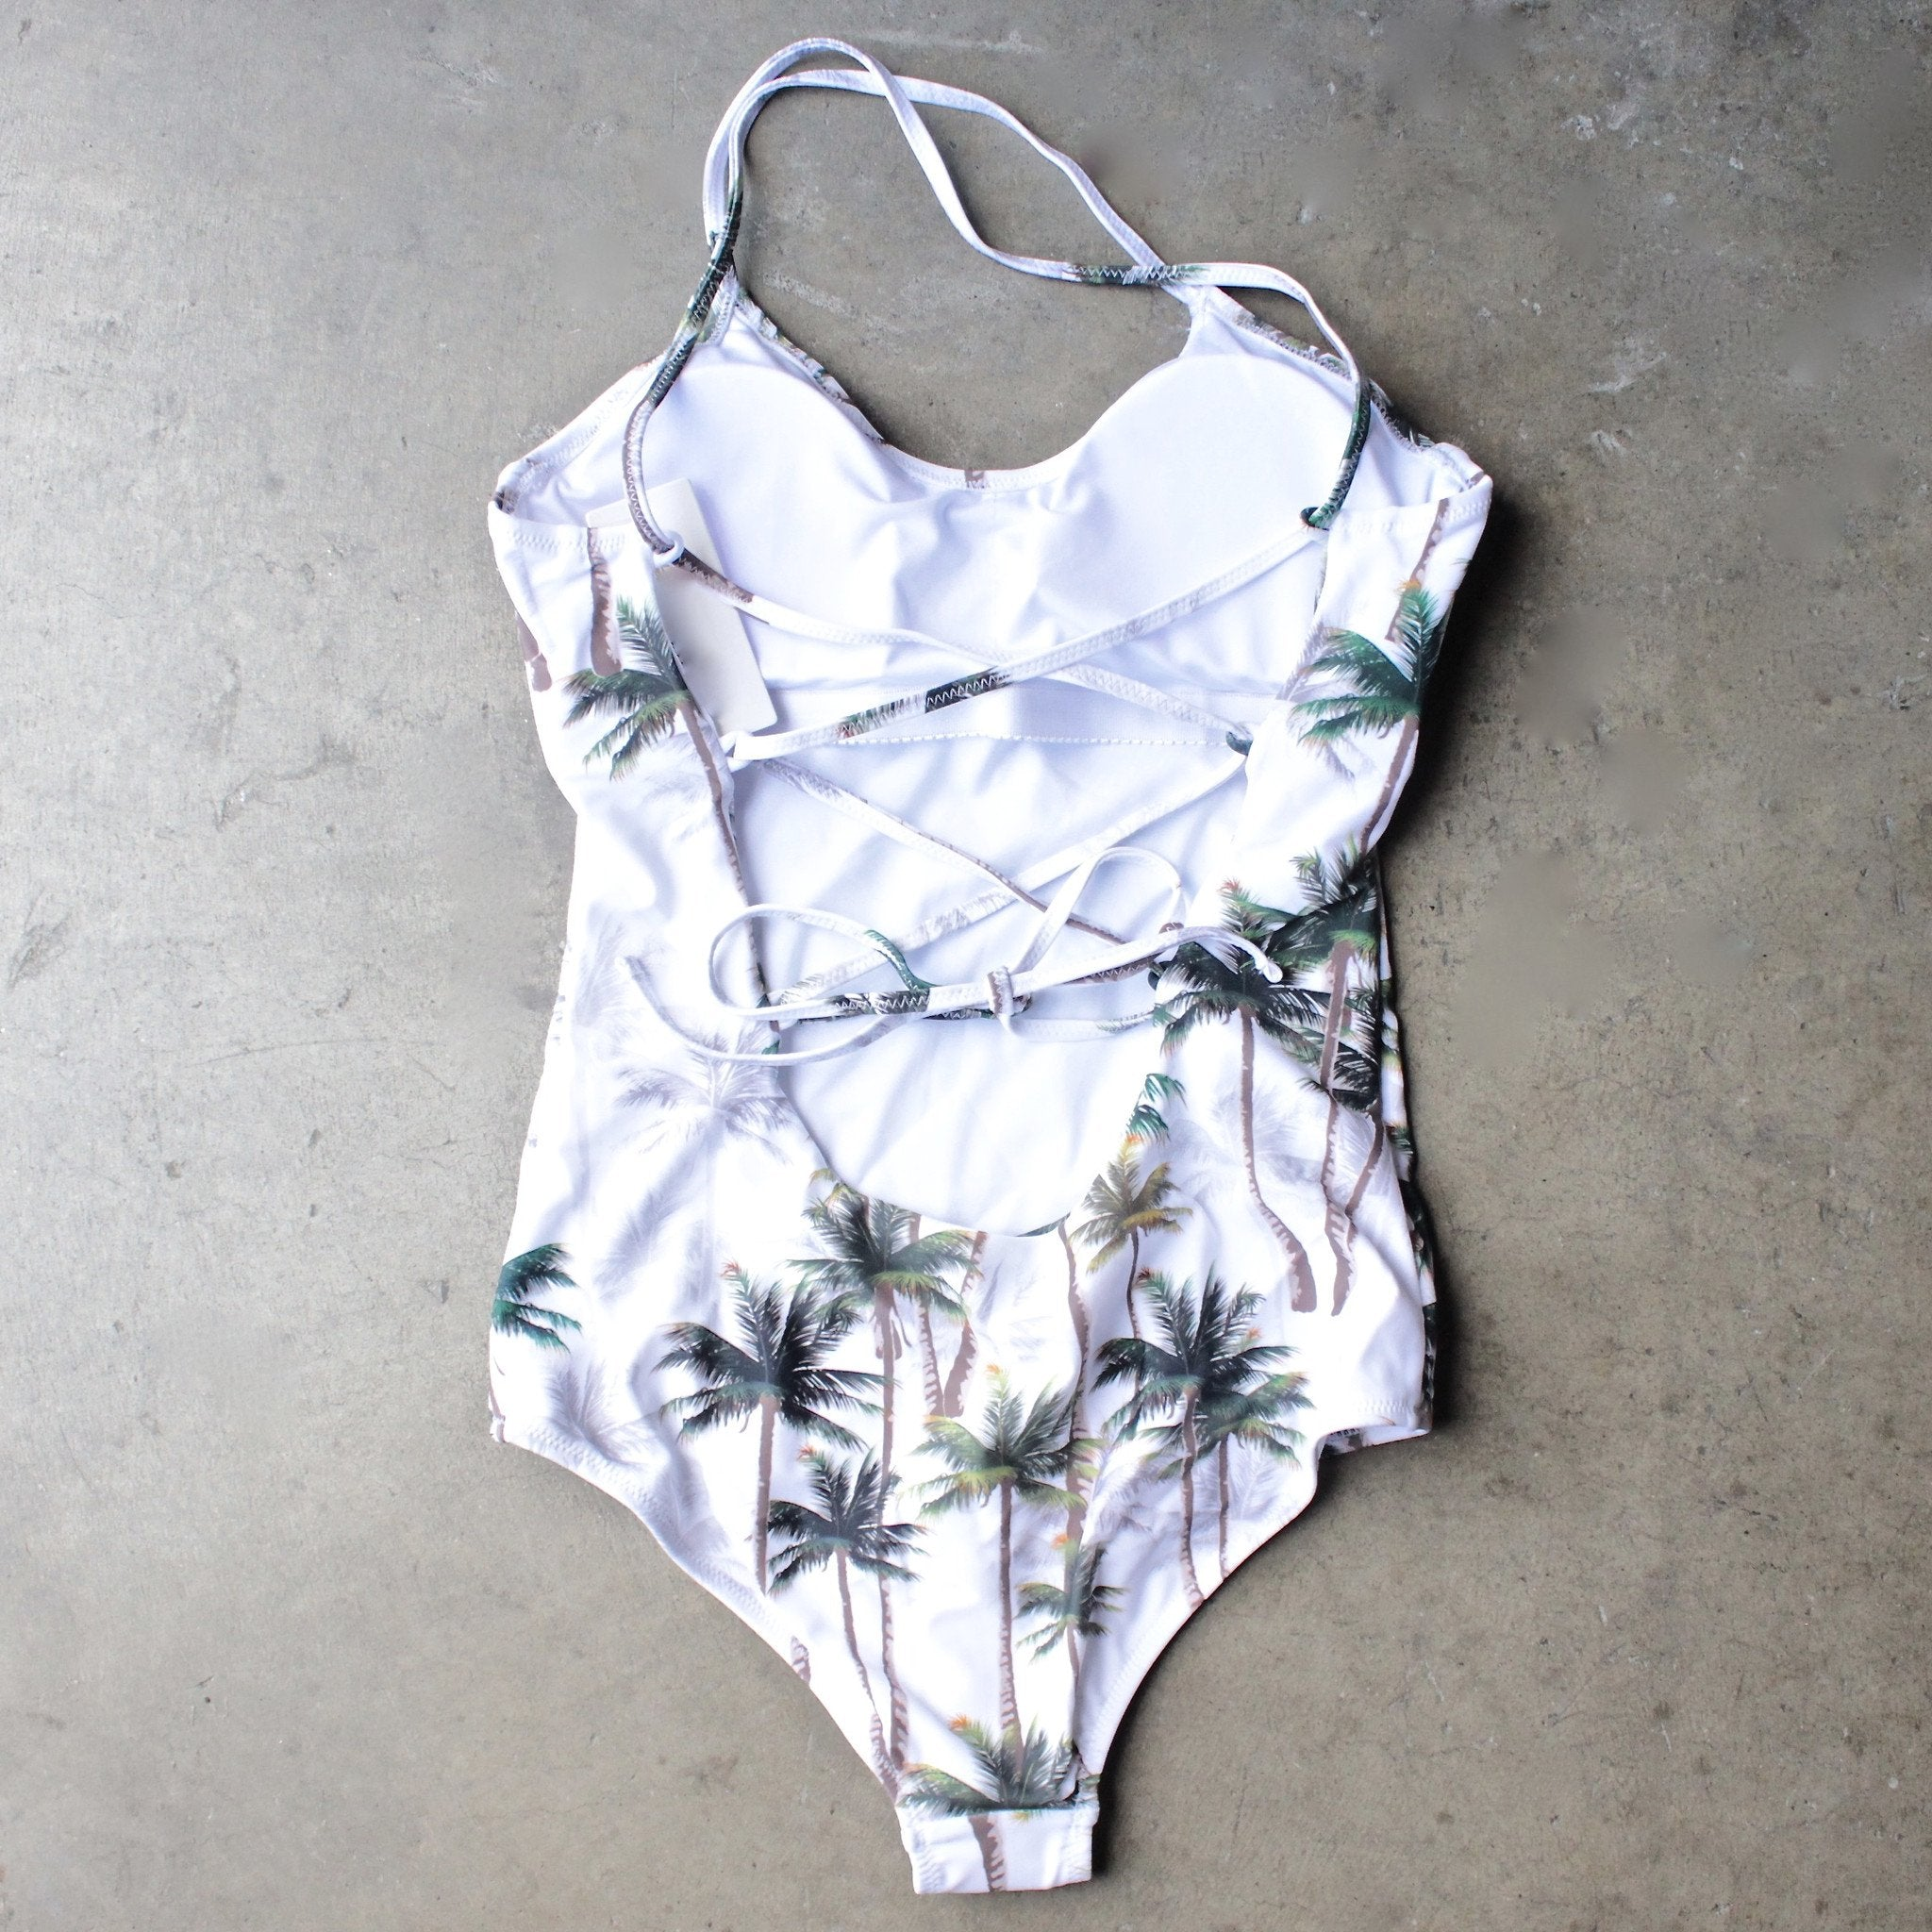 tropical one piece open back swimsuit - shophearts - 1